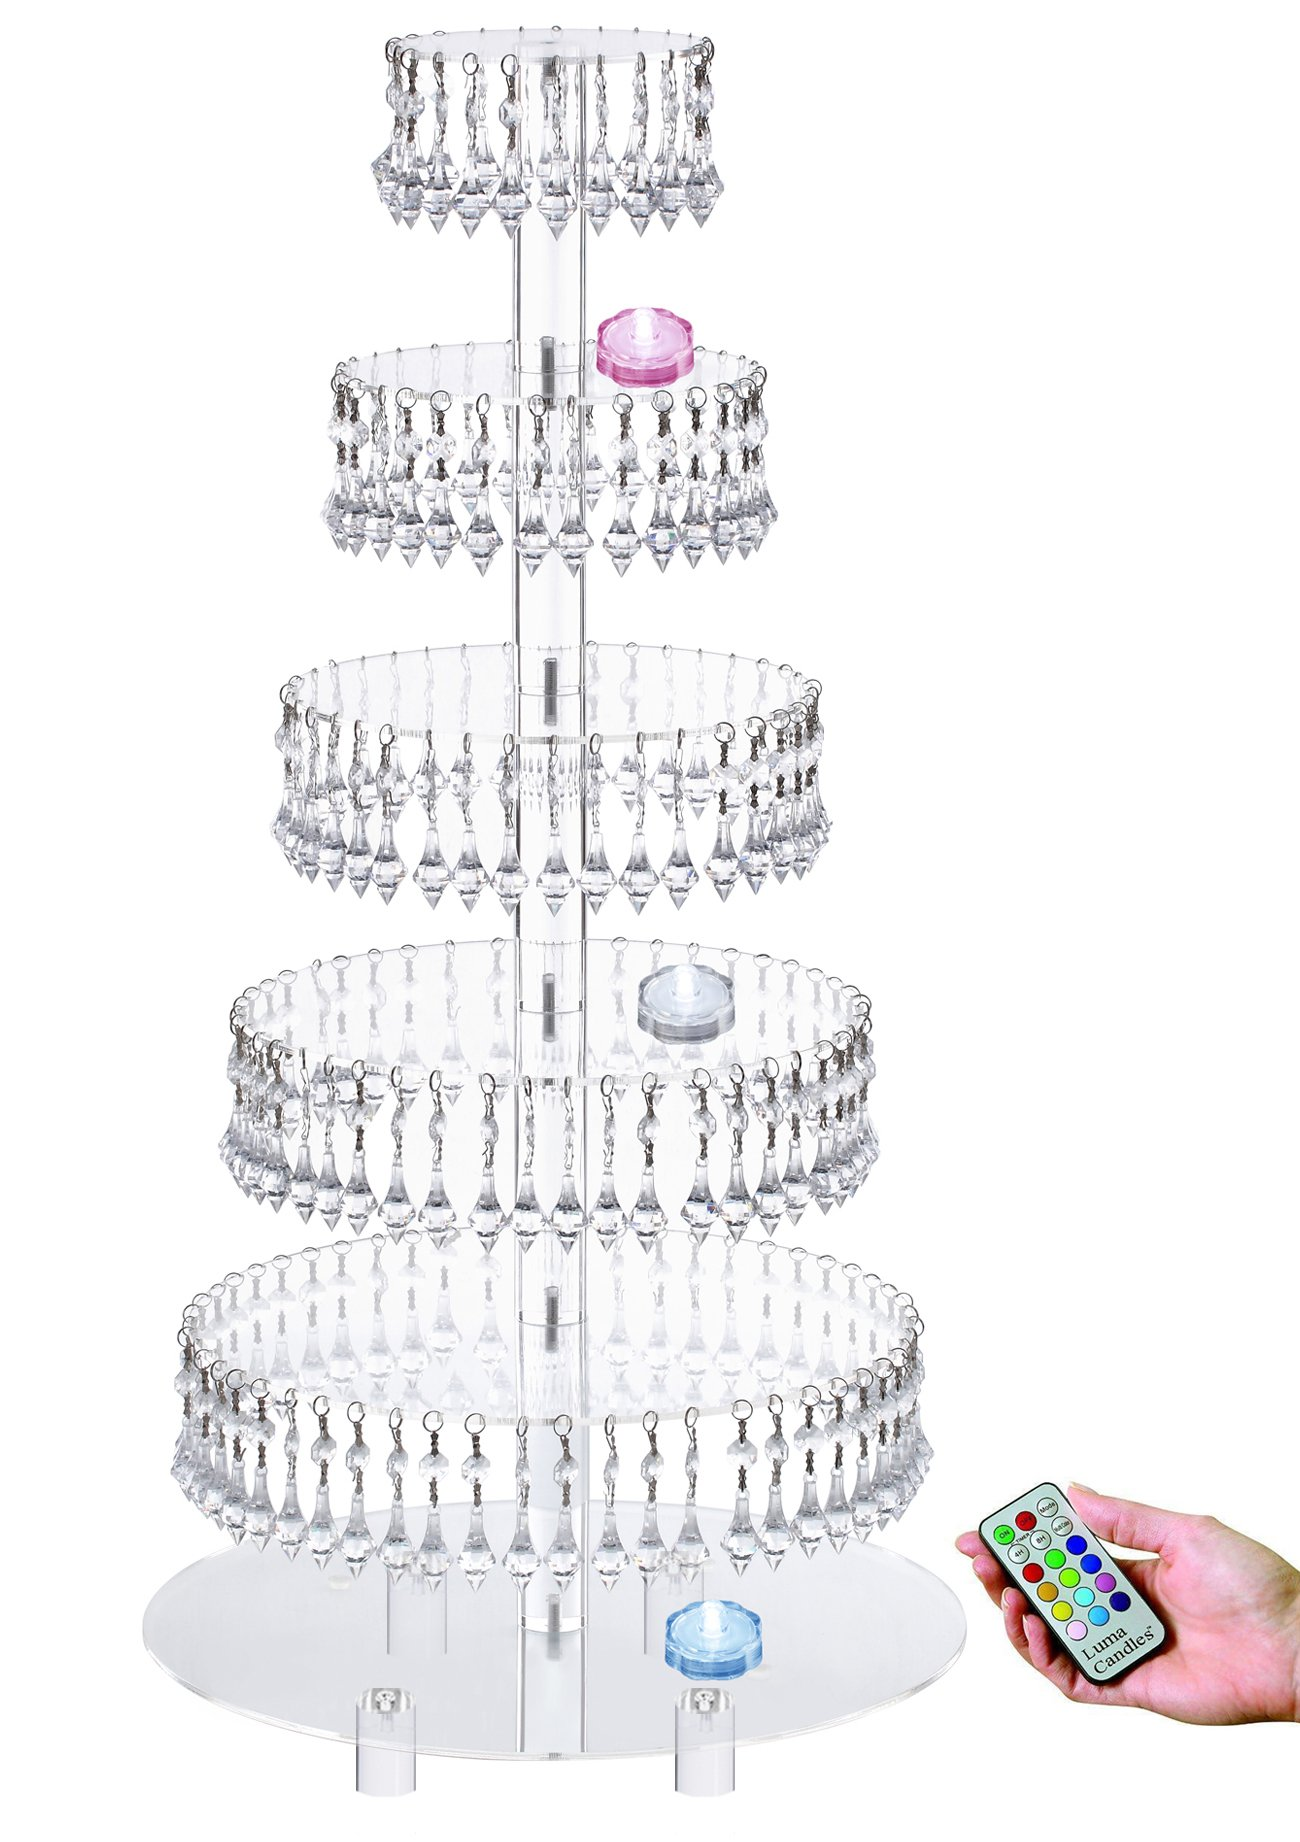 Pre-Installed Crystal Beads-6 Tier Acrylic Cupcake Tower Stand with Hanging Crystal Bead-wedding Party Cake Tower (6 Tier With Feet + LED Light)